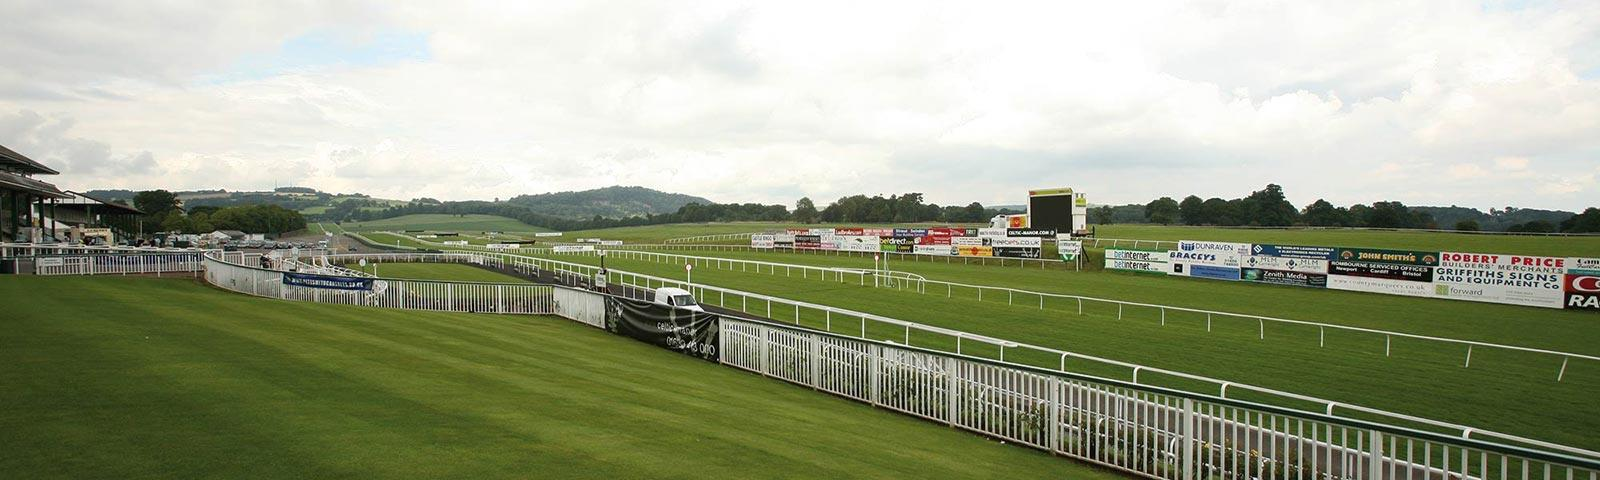 A view of the green turf track at Chepstow Racecourse.